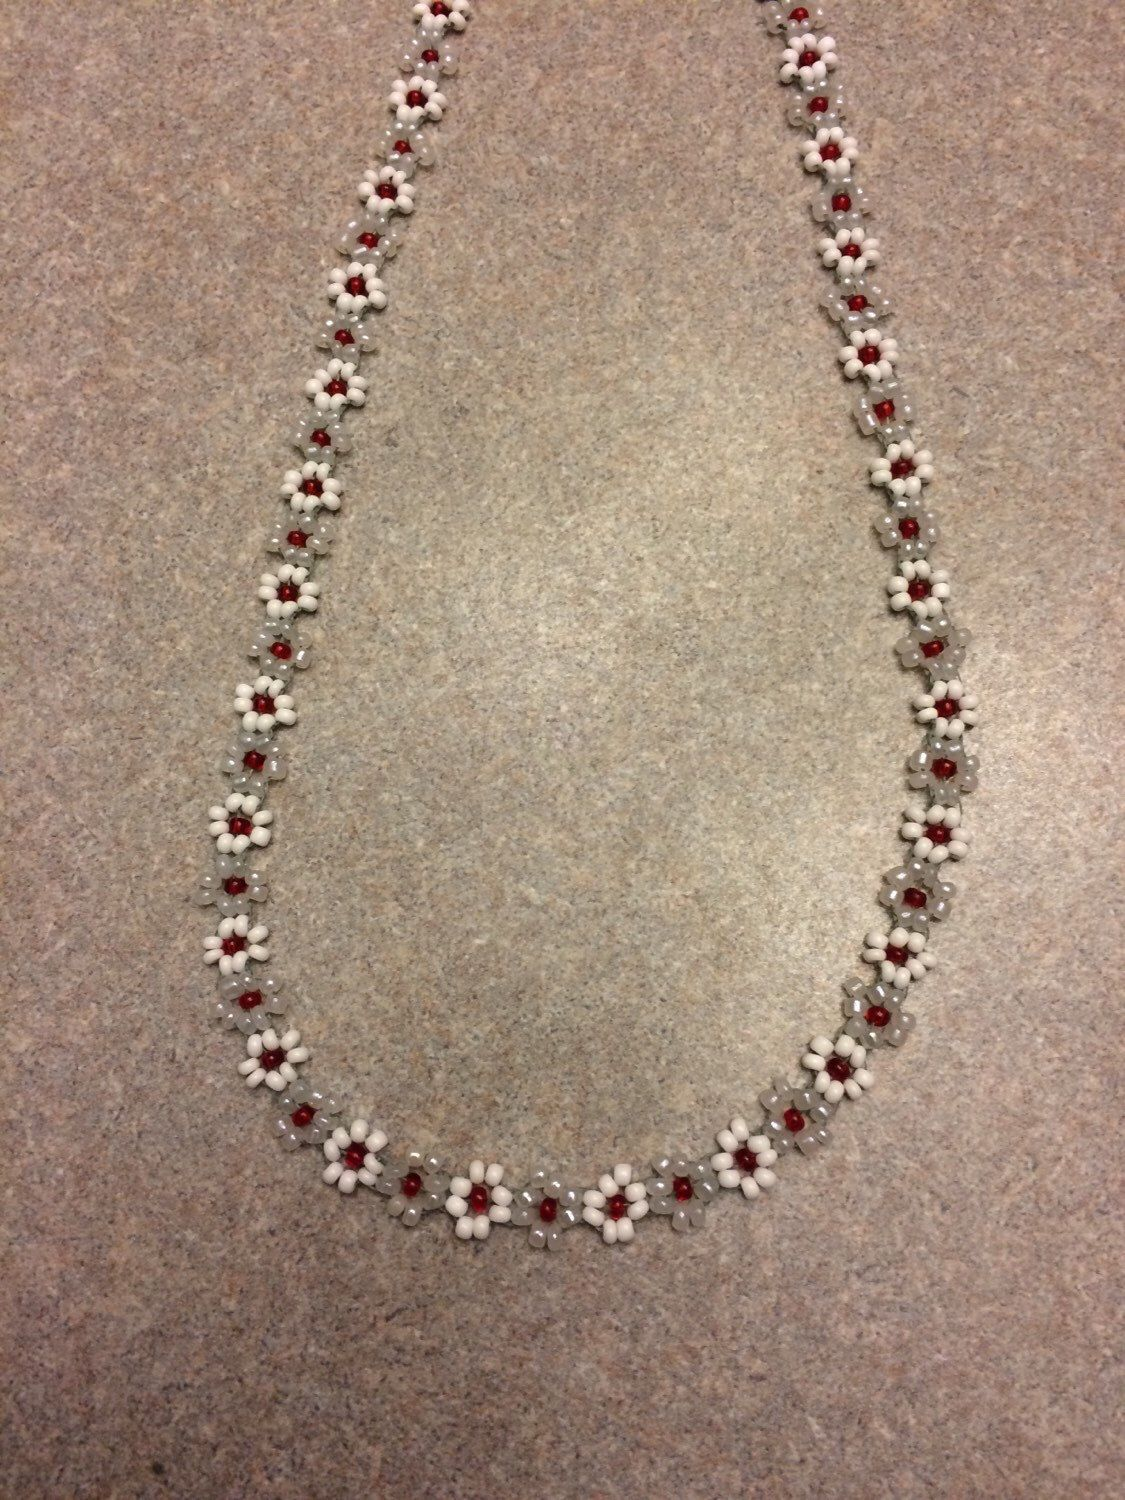 Photo of Daisychain beaded choker necklace fashion jewelry New Handmade MADE TO ORDER